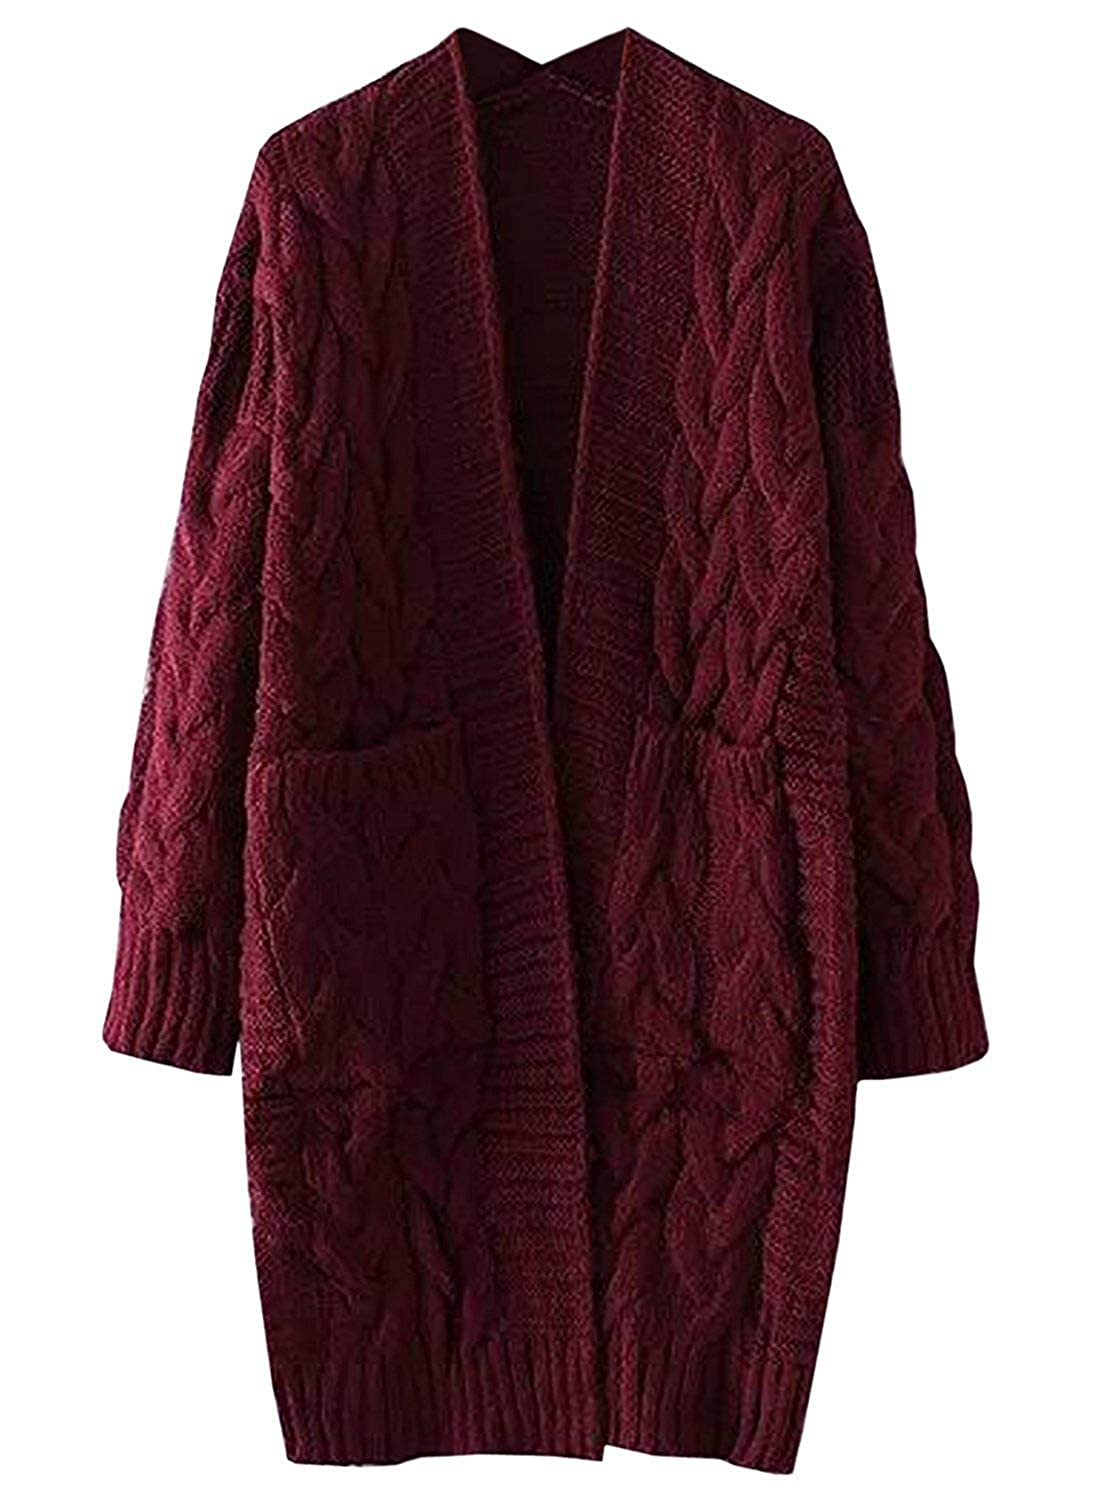 Top 10 wholesale Open Cardigan Sweaters - Chinabrands.com 2398fba53